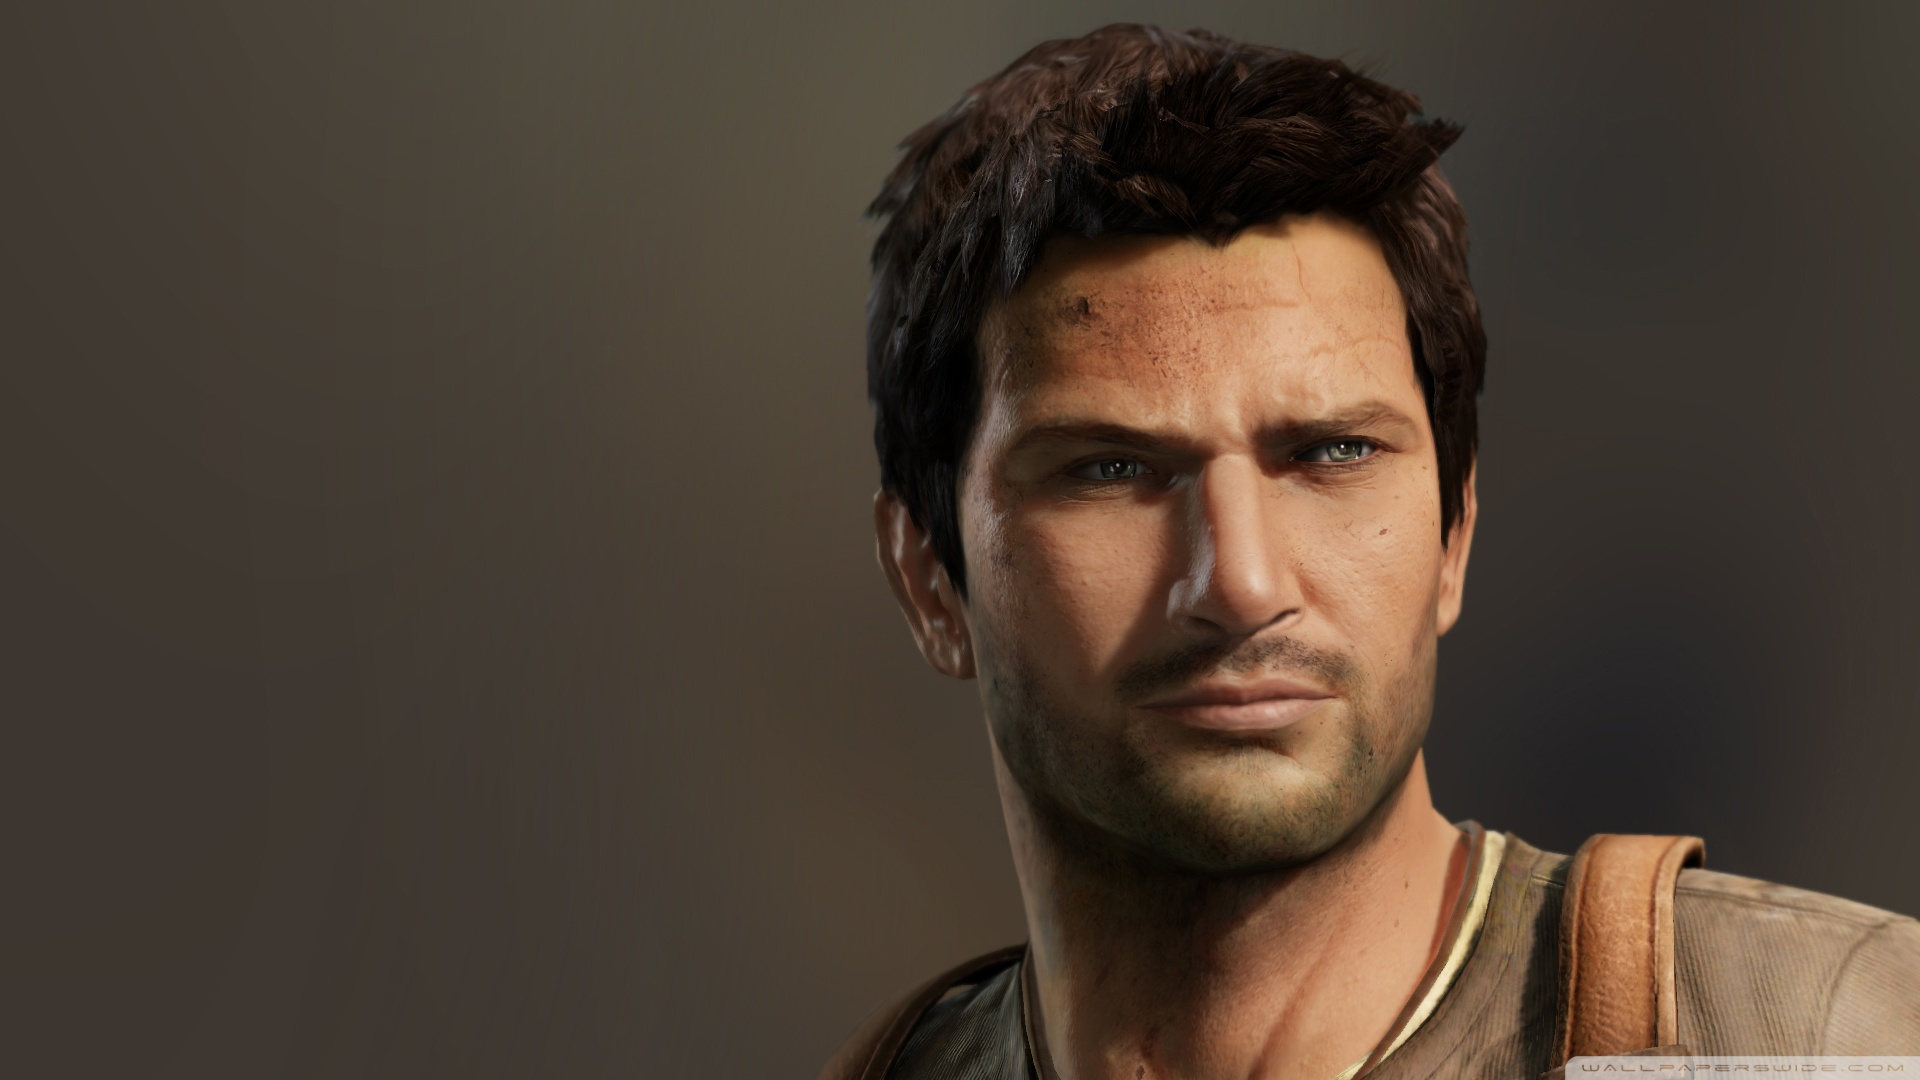 Free Download Nathan Drake Nate Uncharted Series Wallpaper